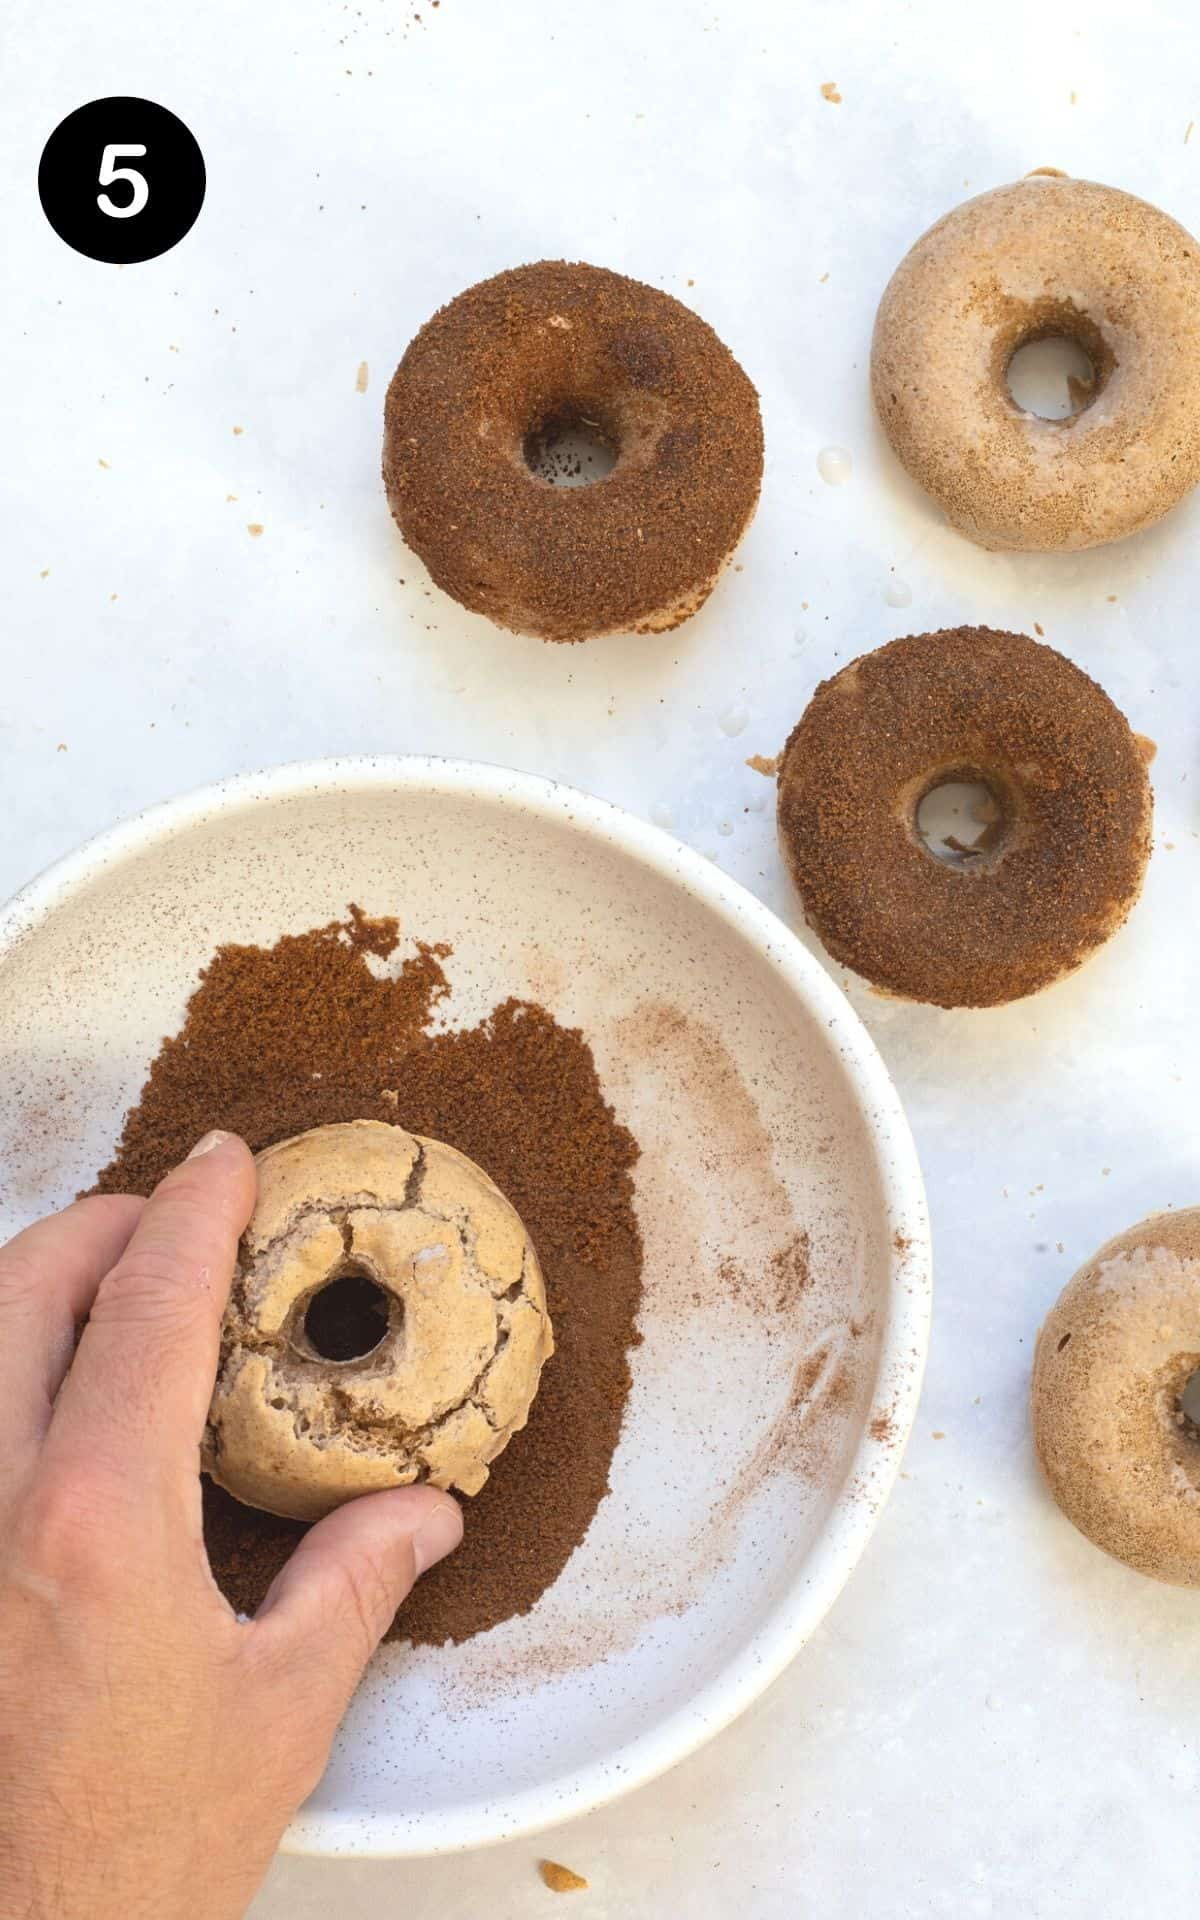 dipping the doughnuts into a bowl with cinnamon sugar